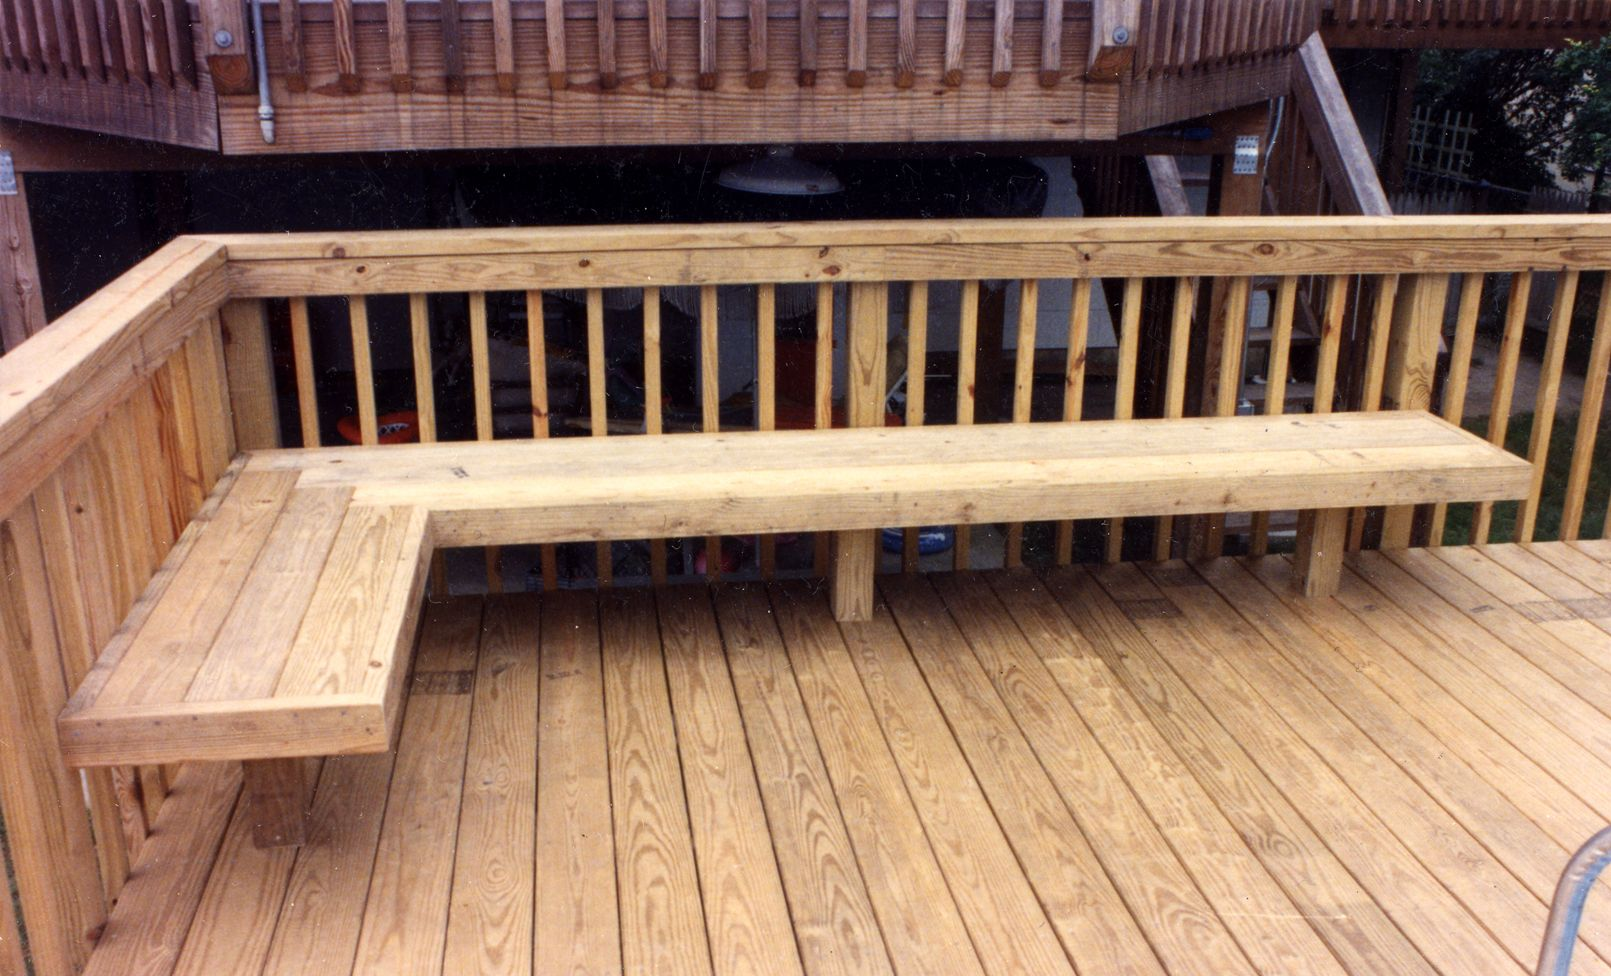 Built In Seating For Deck Storage Underneath Deck Seating Building A Deck Deck Bench Seating